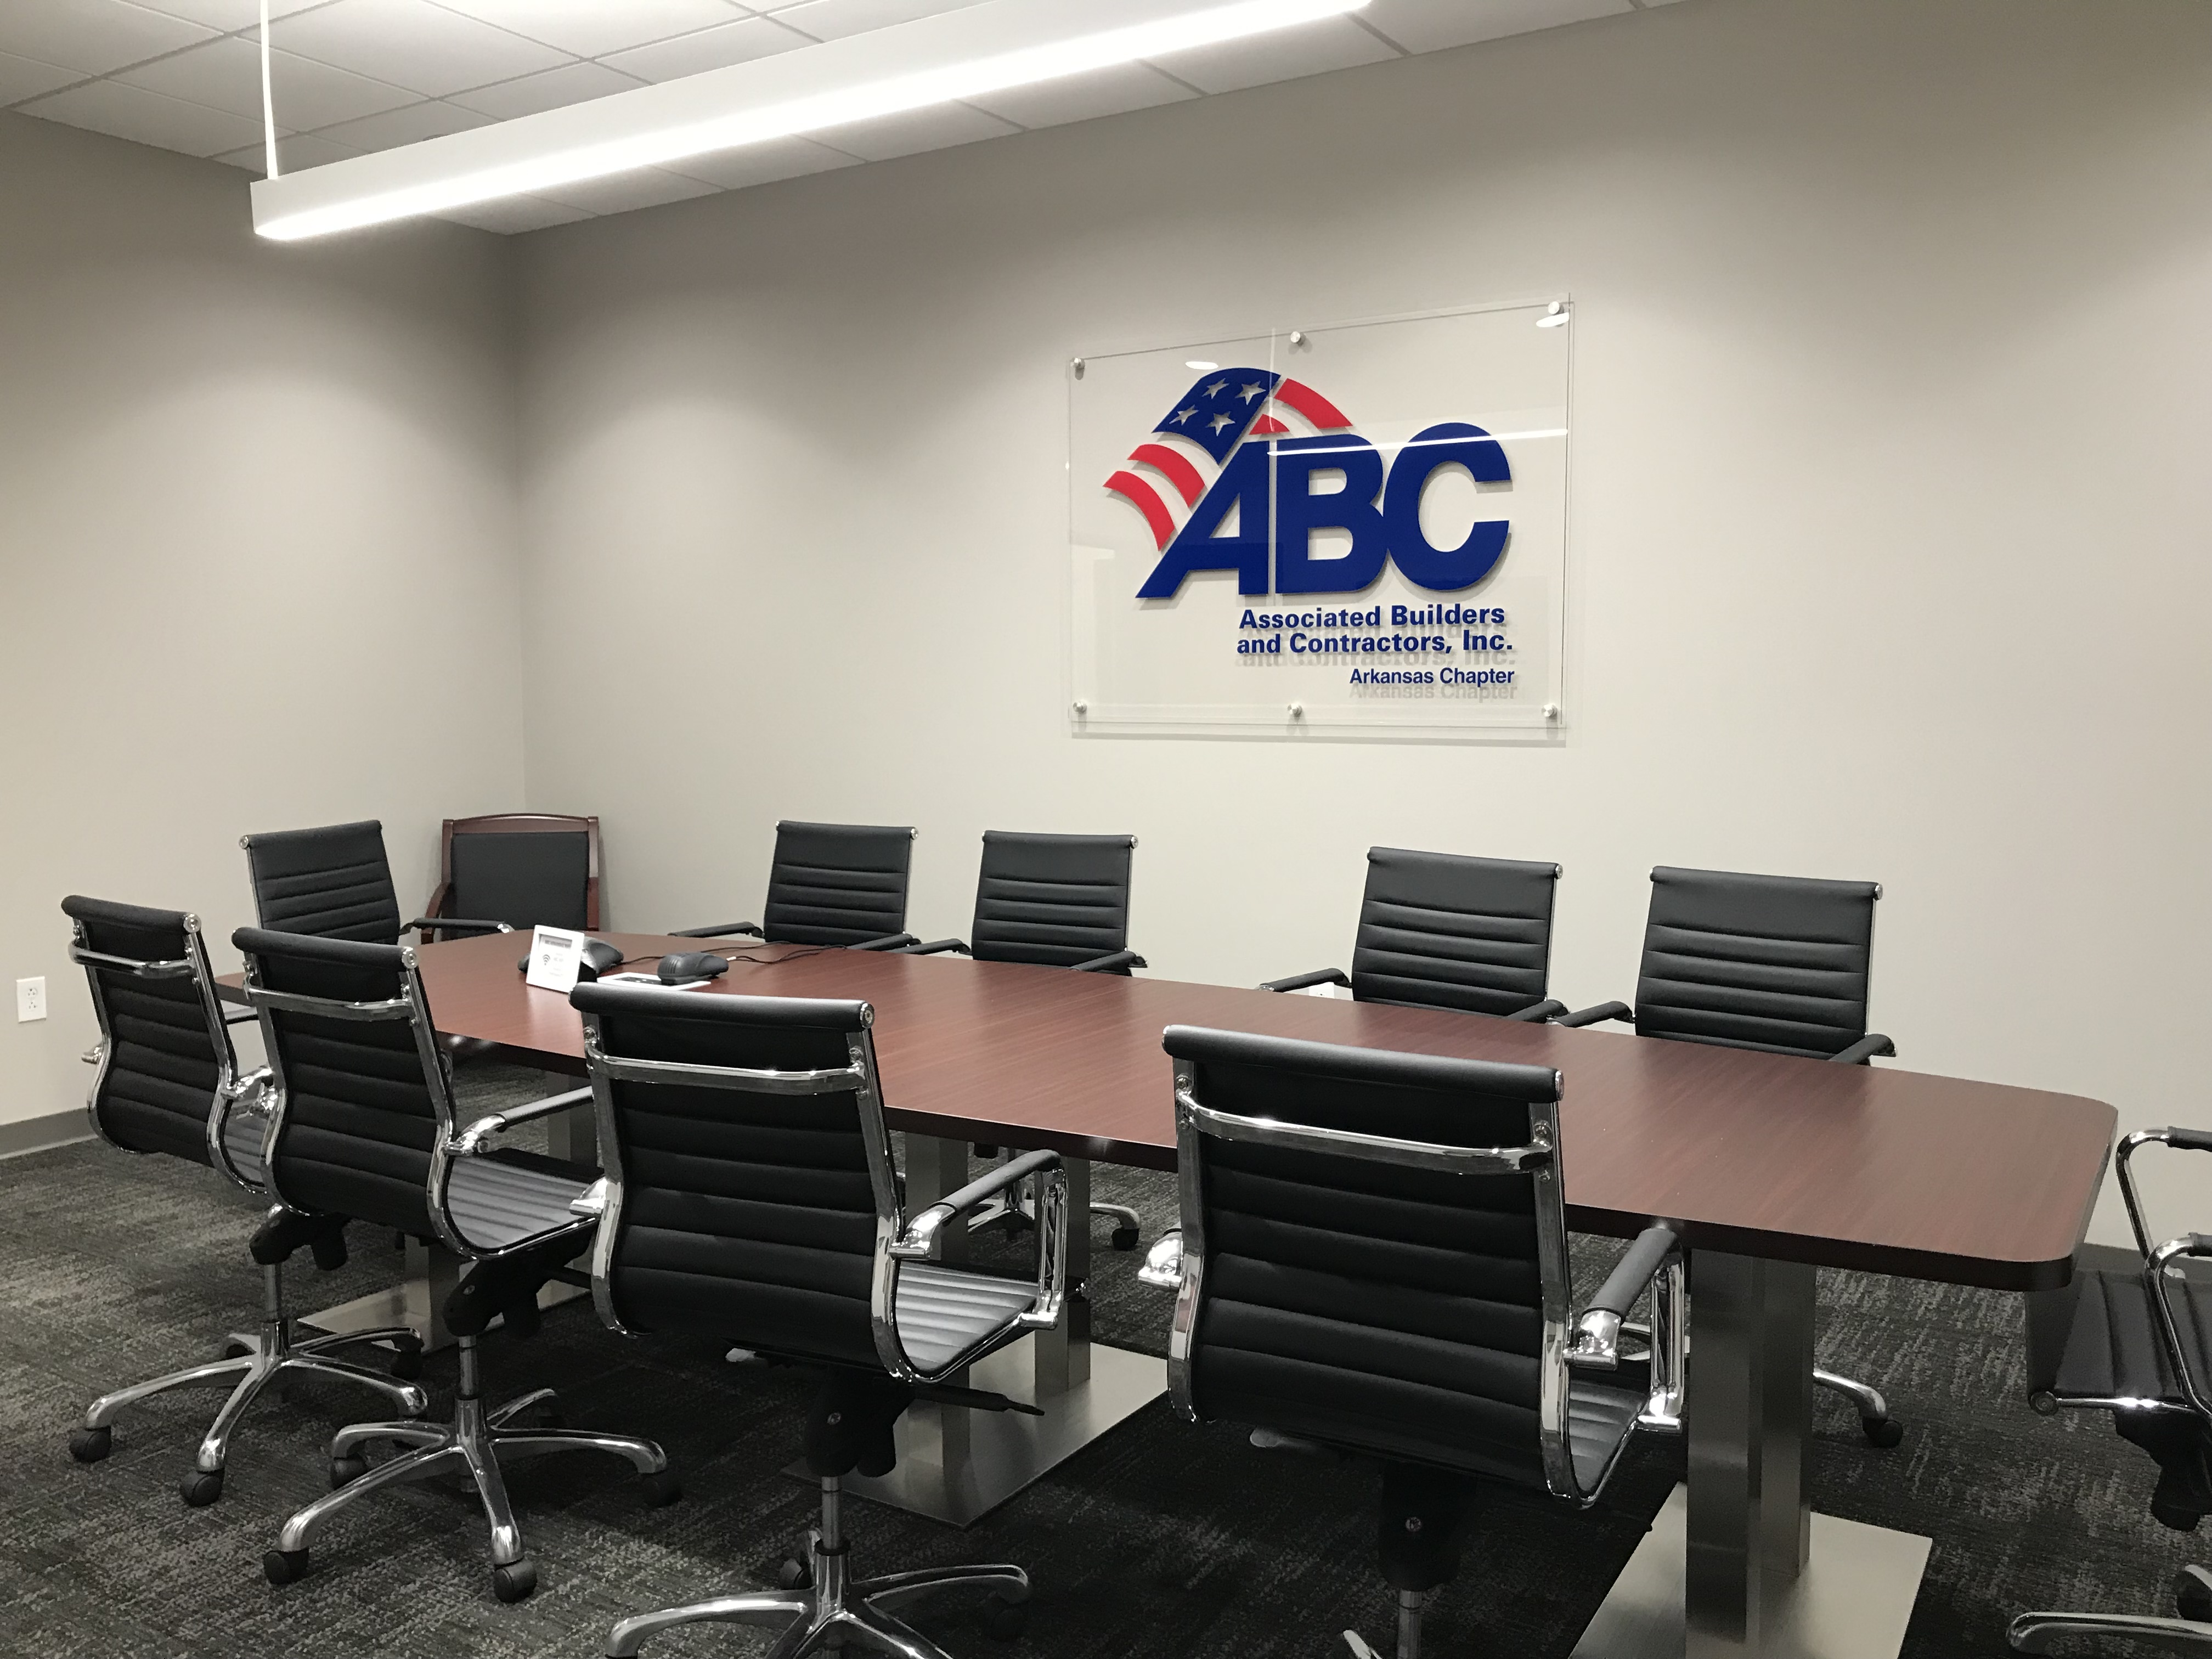 ABC Conference Room